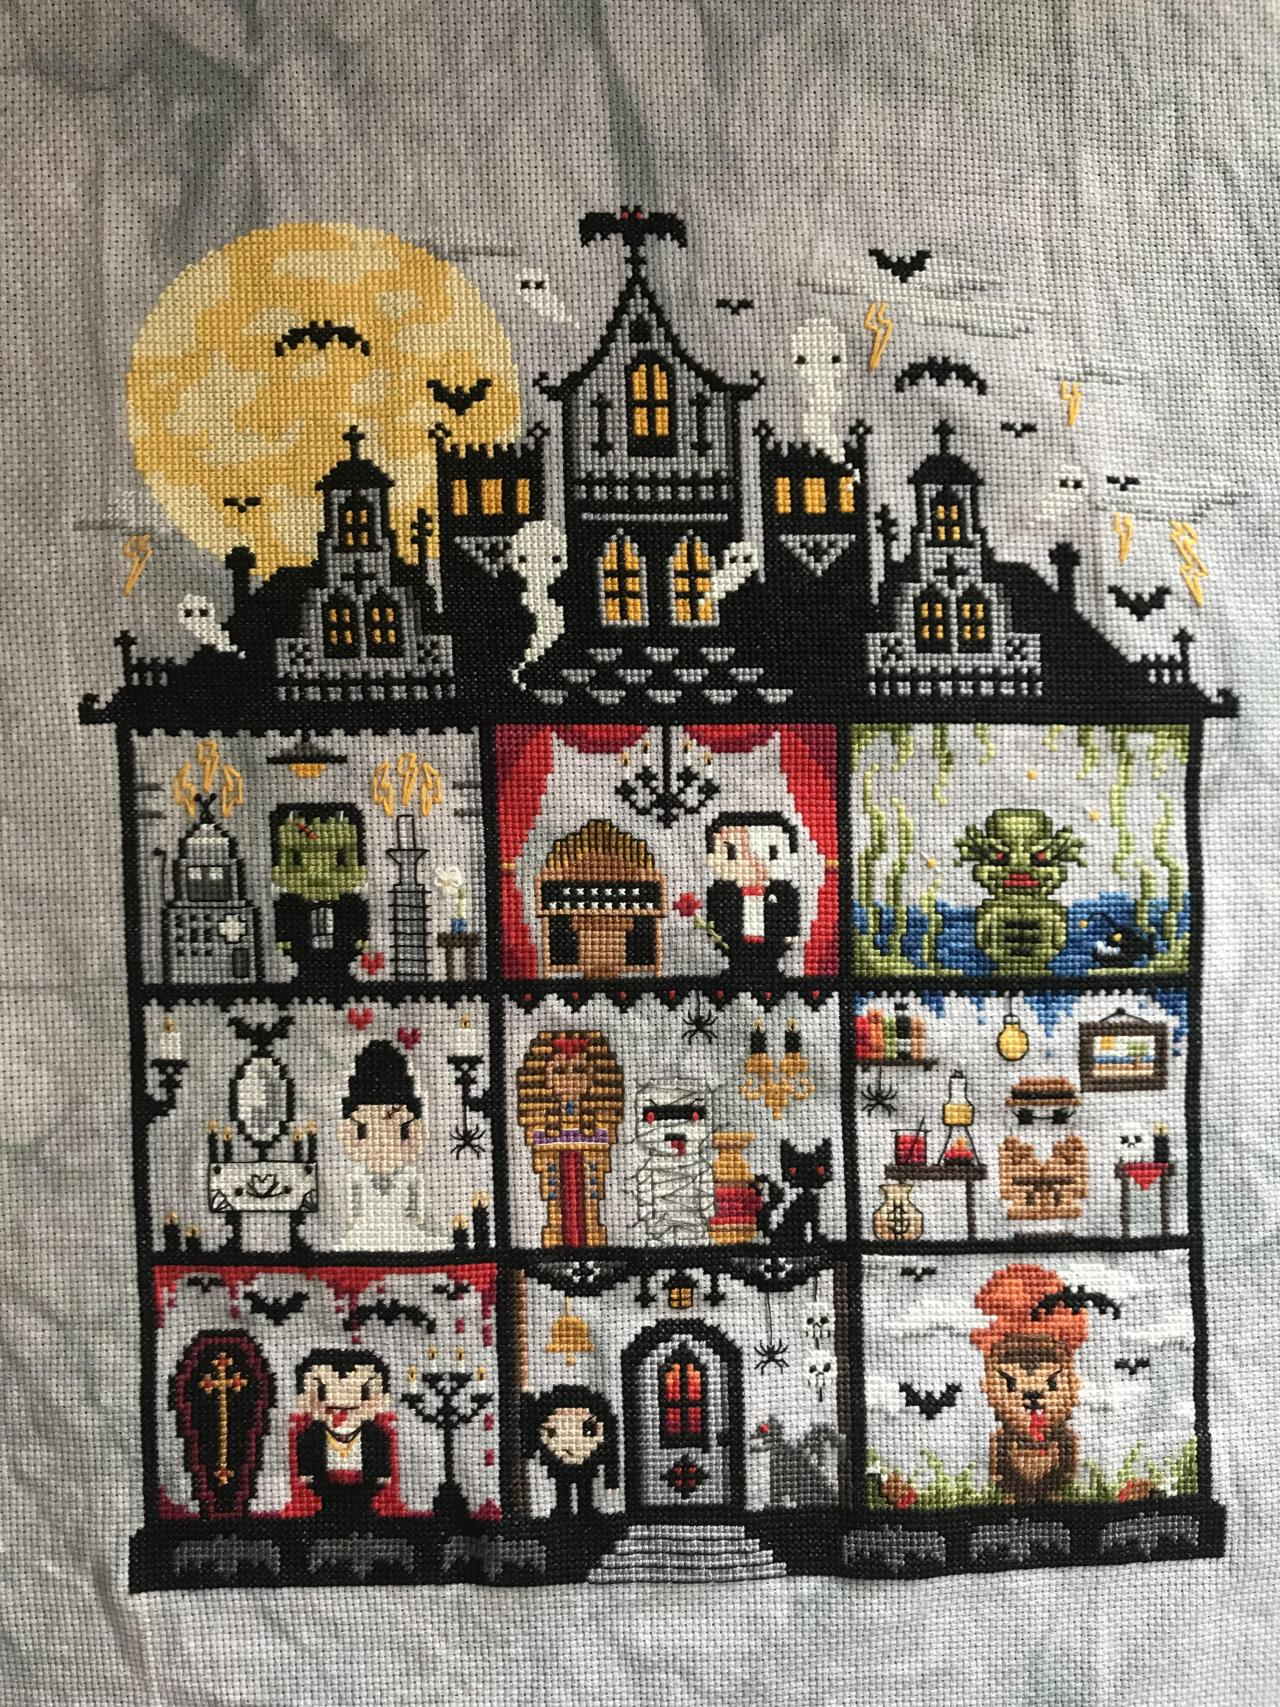 Universal Monster SALstitched byKarlyFr1es. Pattern ($18.09) designed by Meg Black of The Witchy Stitcher. #cross stitch#inspo#x #the witchy stitcher #pop culture#halloween